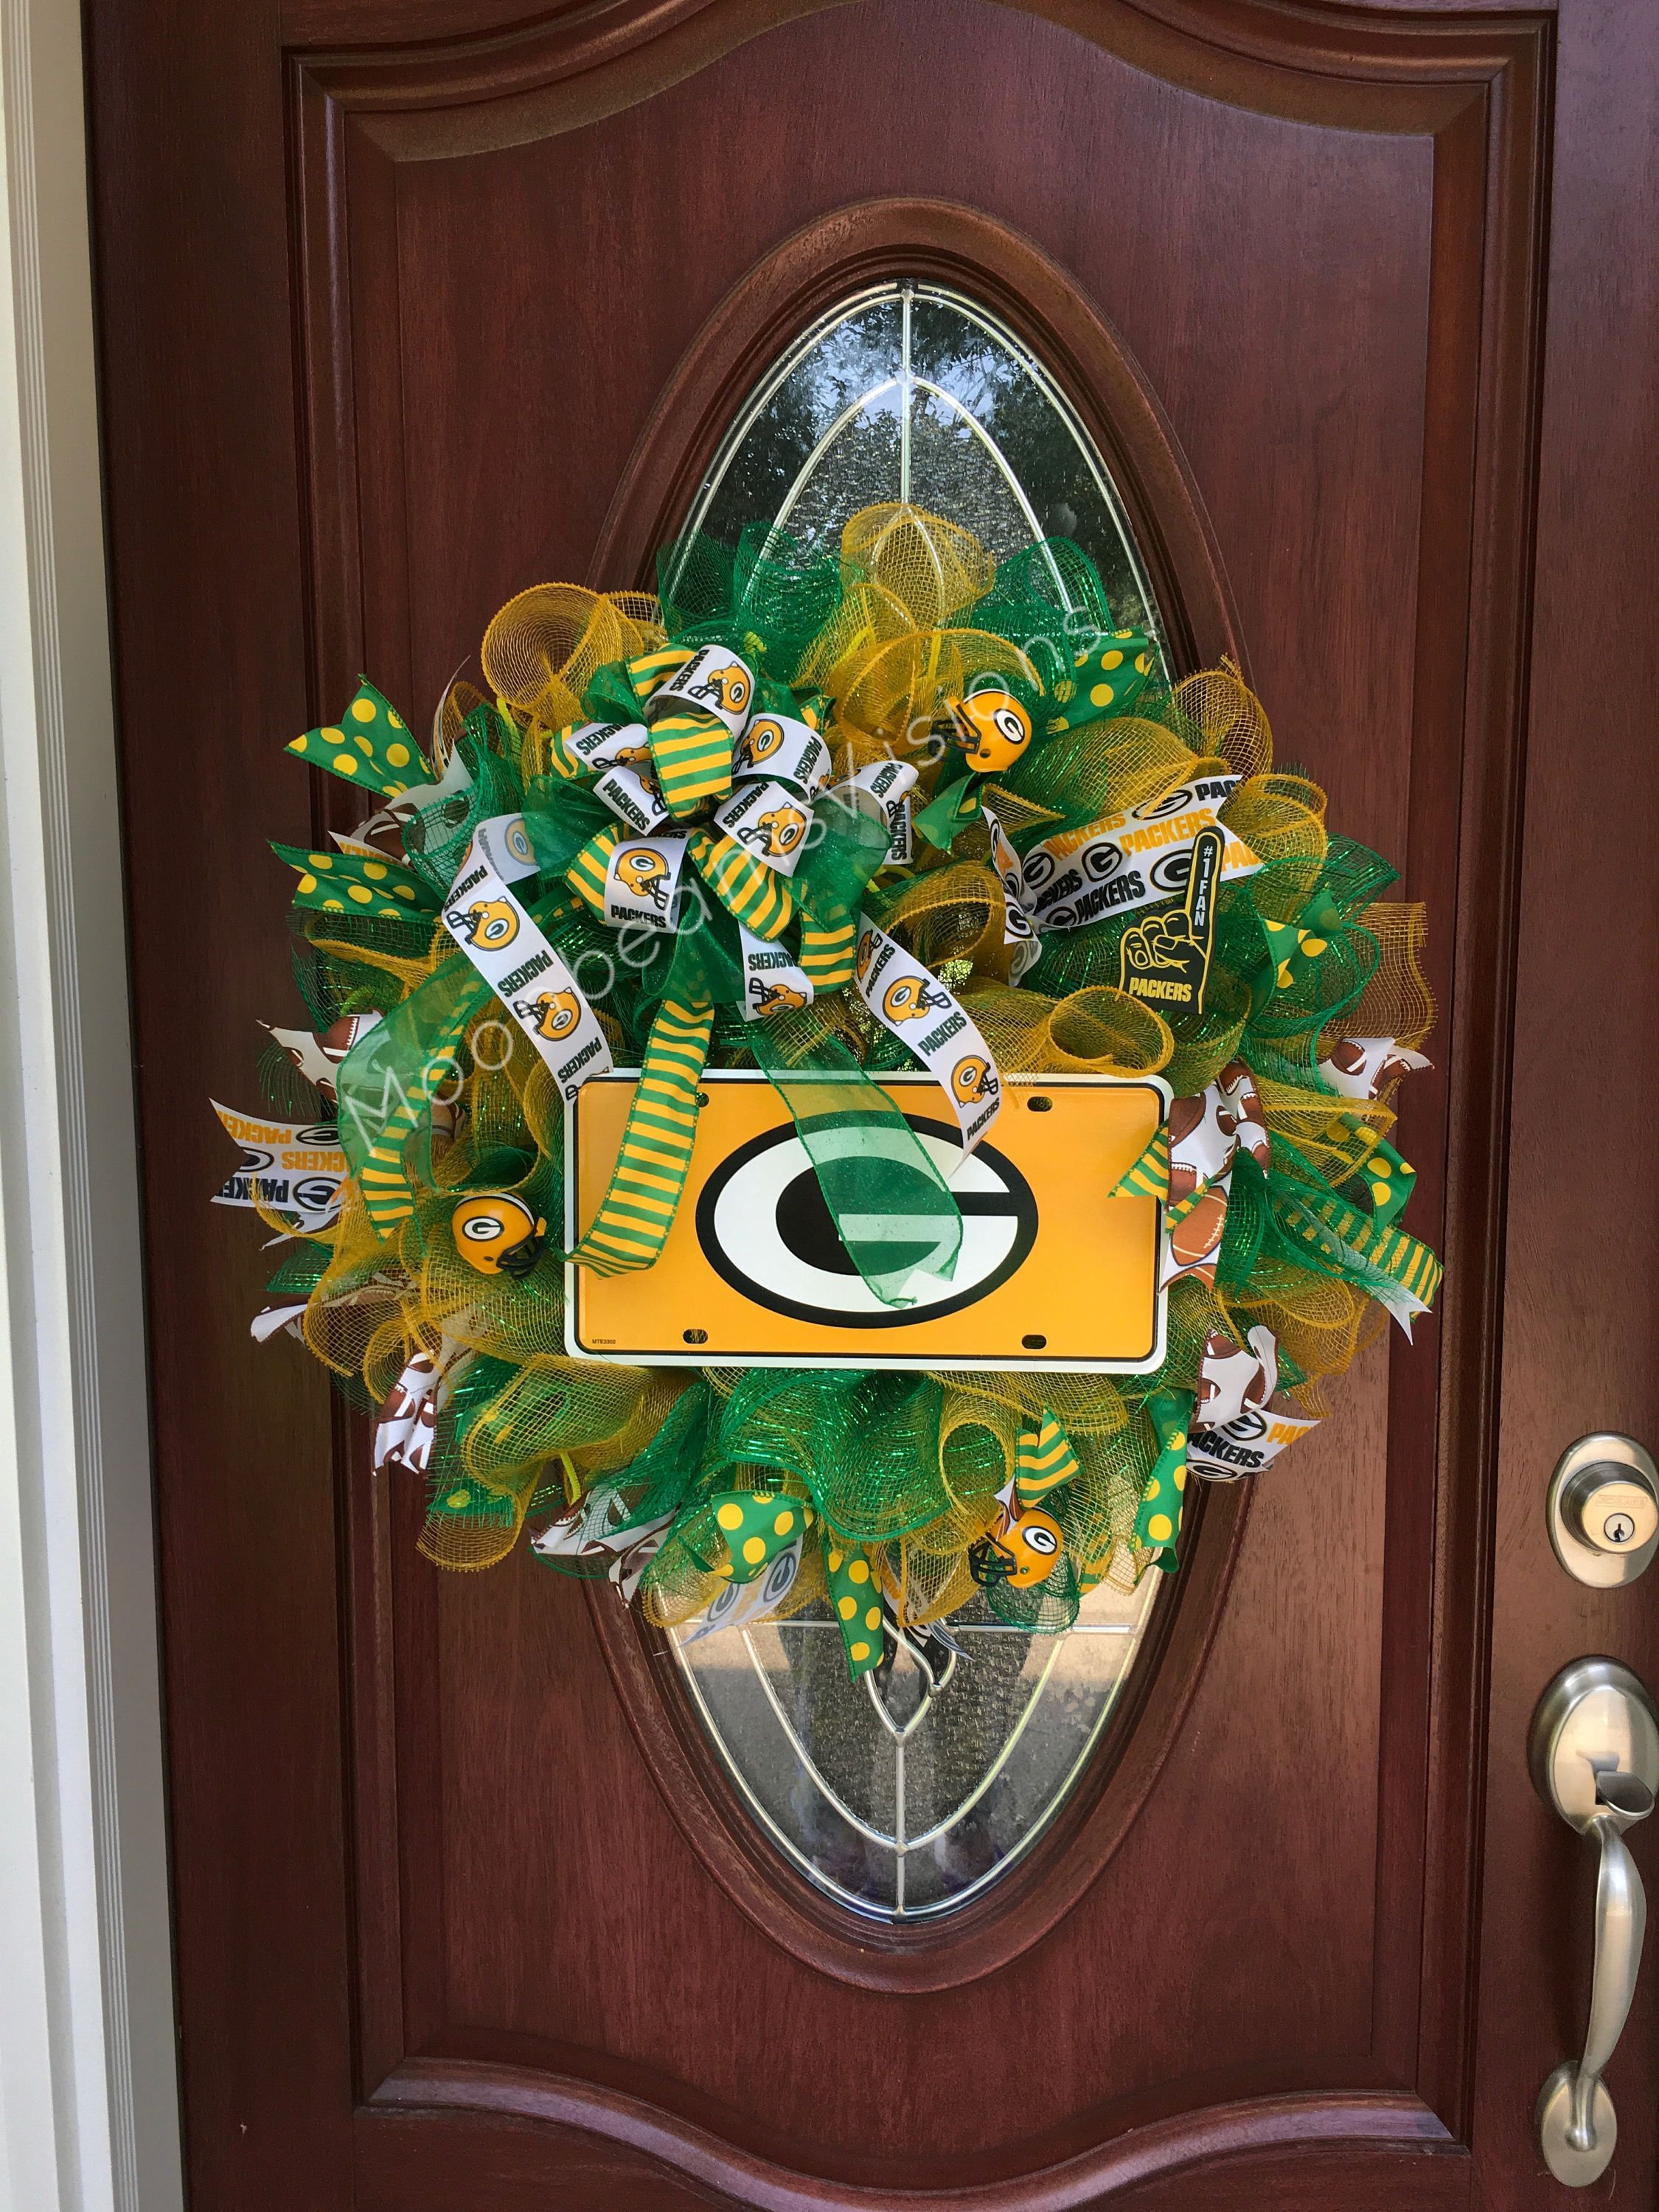 Green Bay Packers Wreath This Wreath Is Unique And Would Make The Perfect Addition To Y Green Bay Packers Decor Green Bay Packers Wreath Green Bay Packers Art